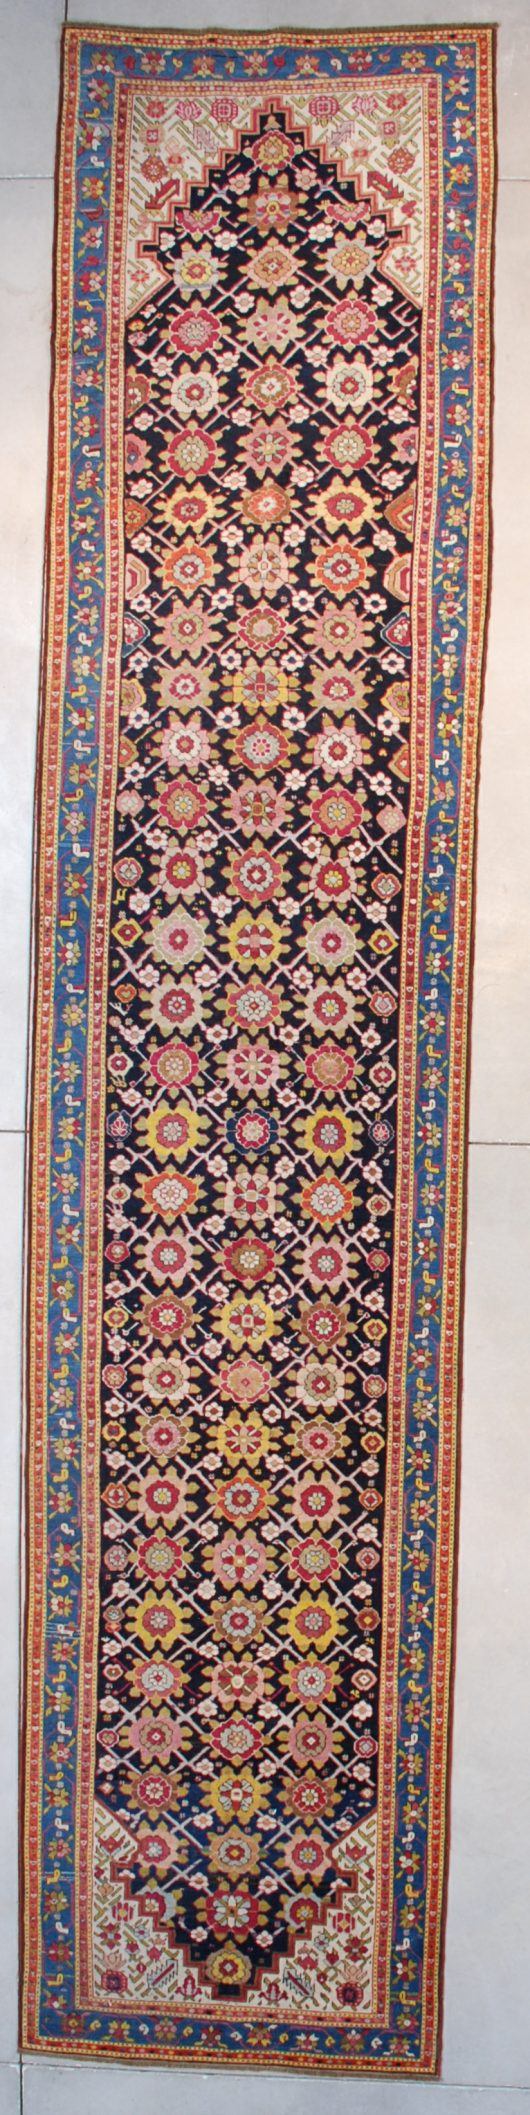 7628 Karabaugh runner rug